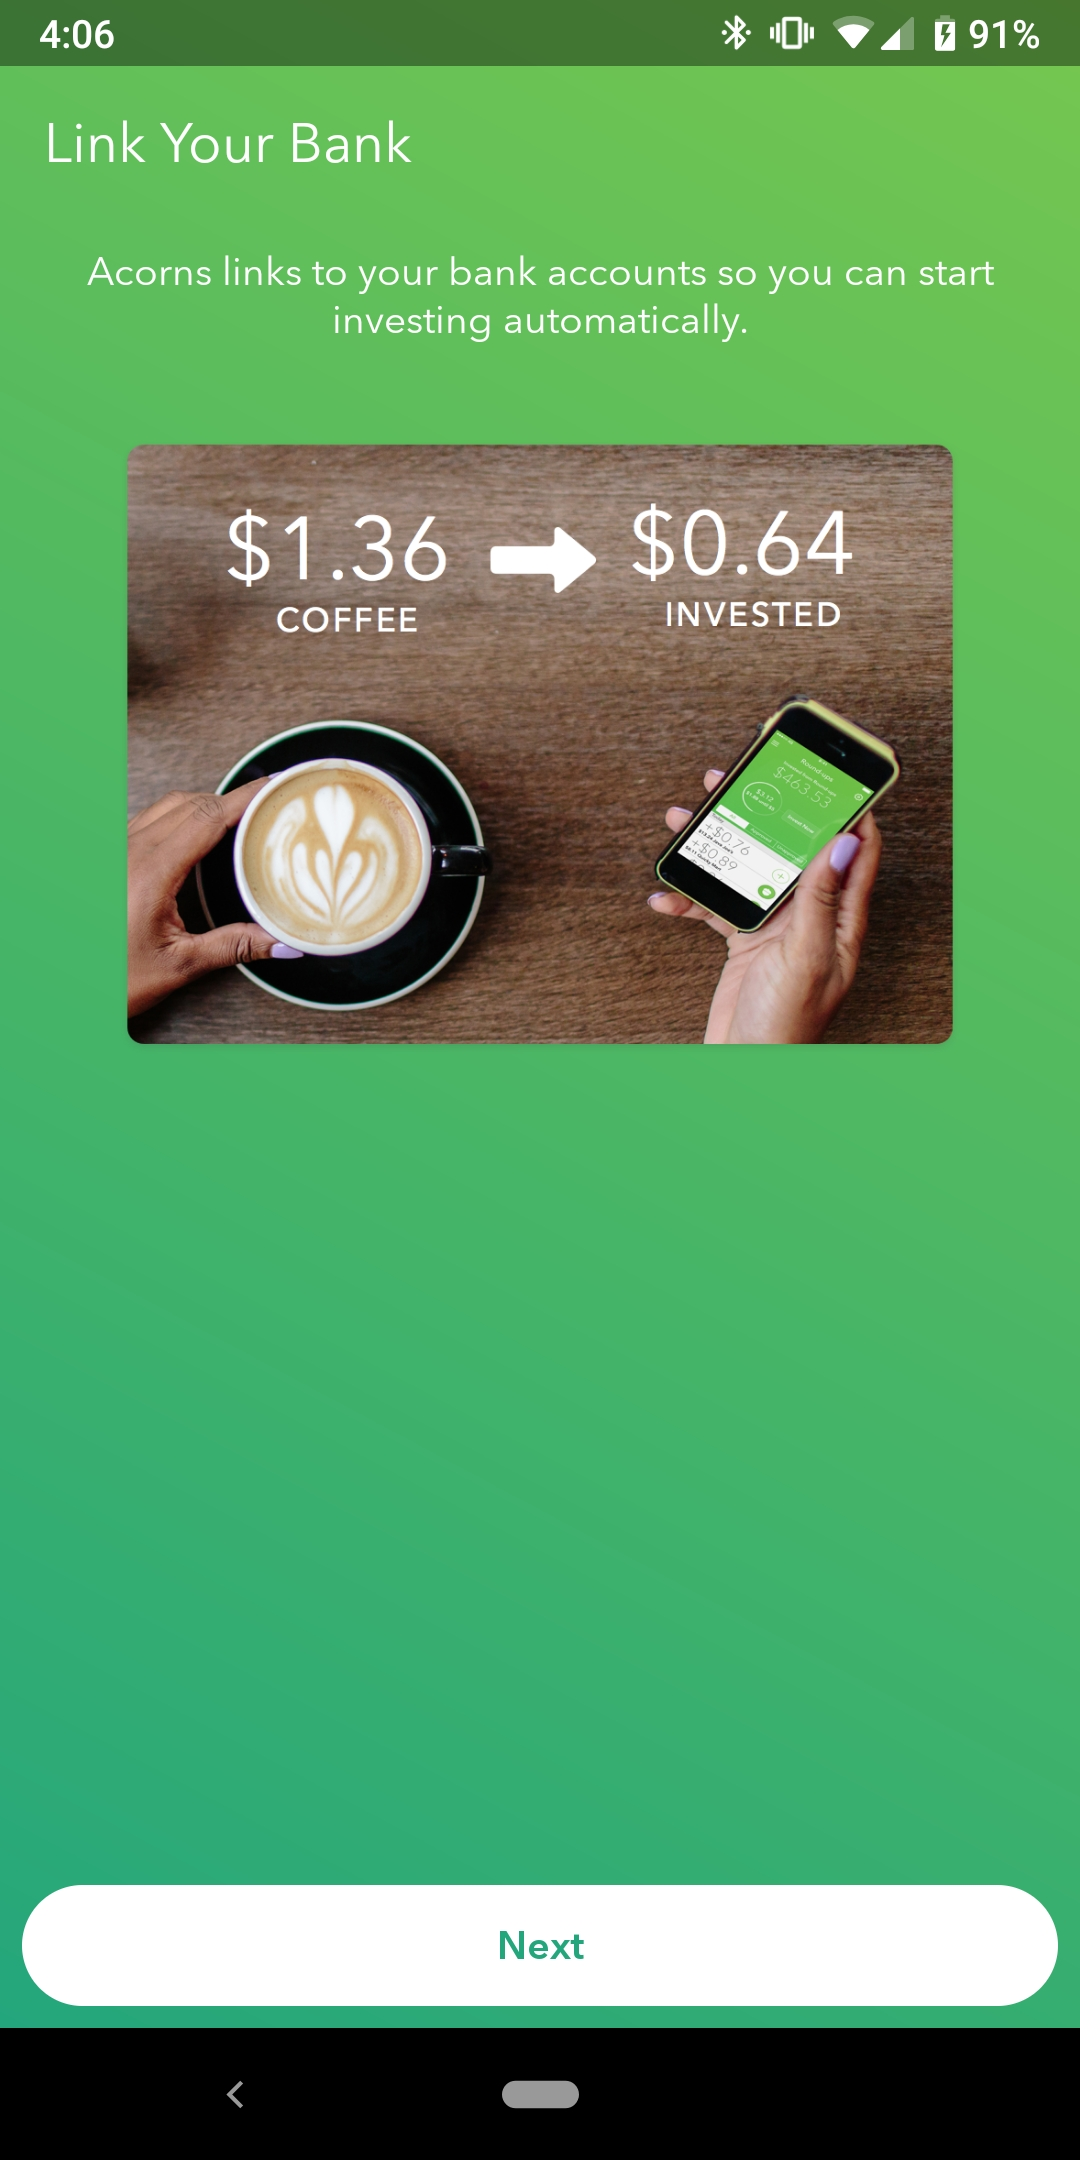 Acorn's mobile app screen prompting users to link their bank